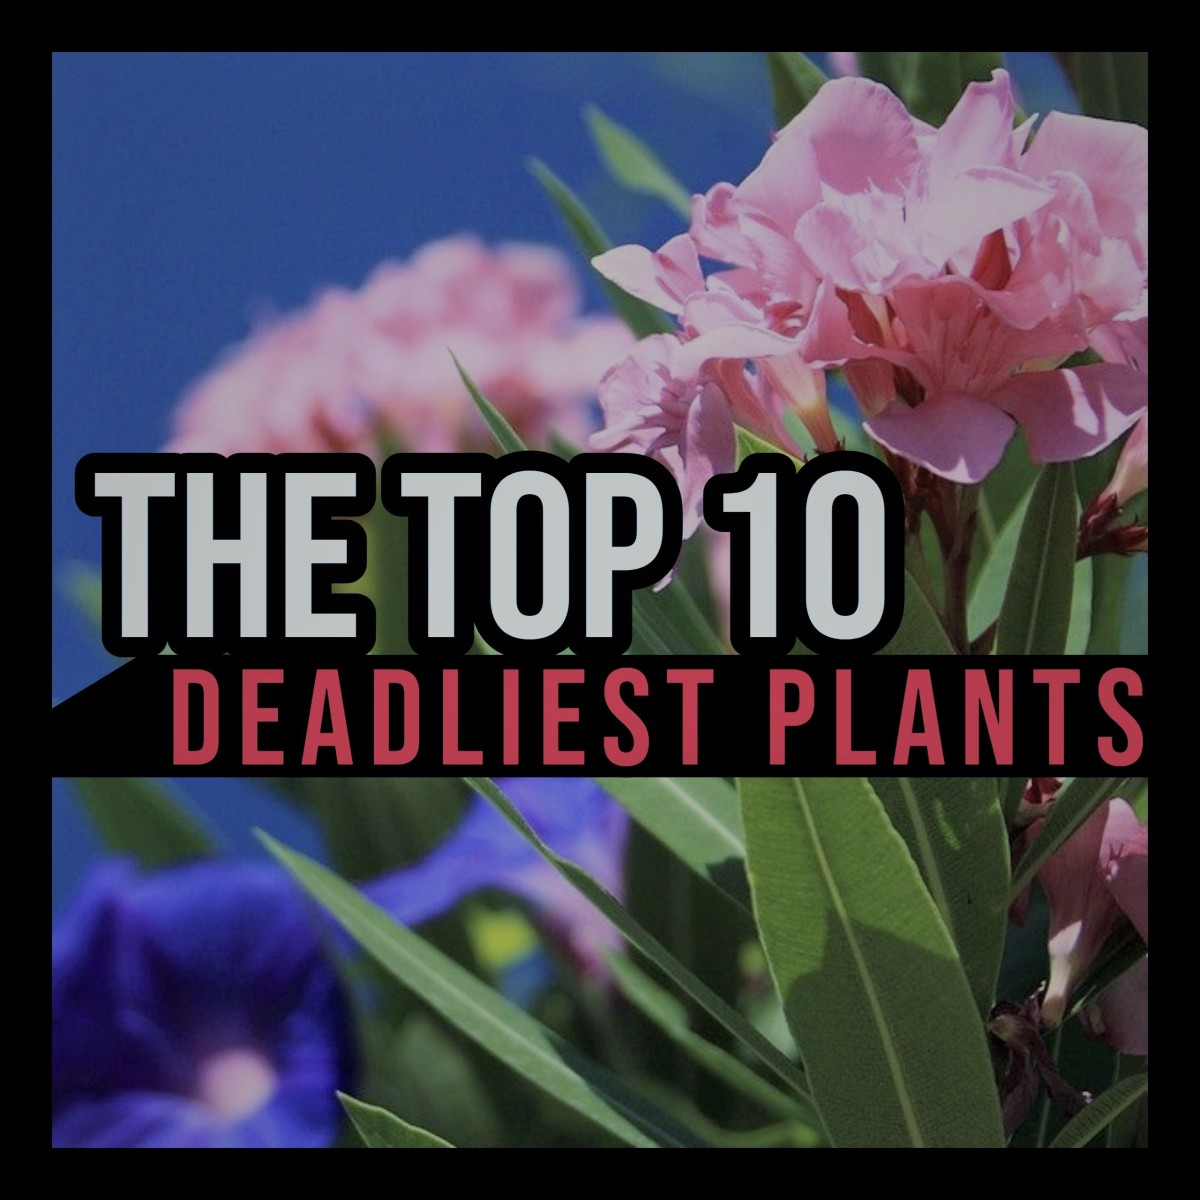 From Jimson Weed to Hemlock, this article ranks the 10 deadliest plants in the world.